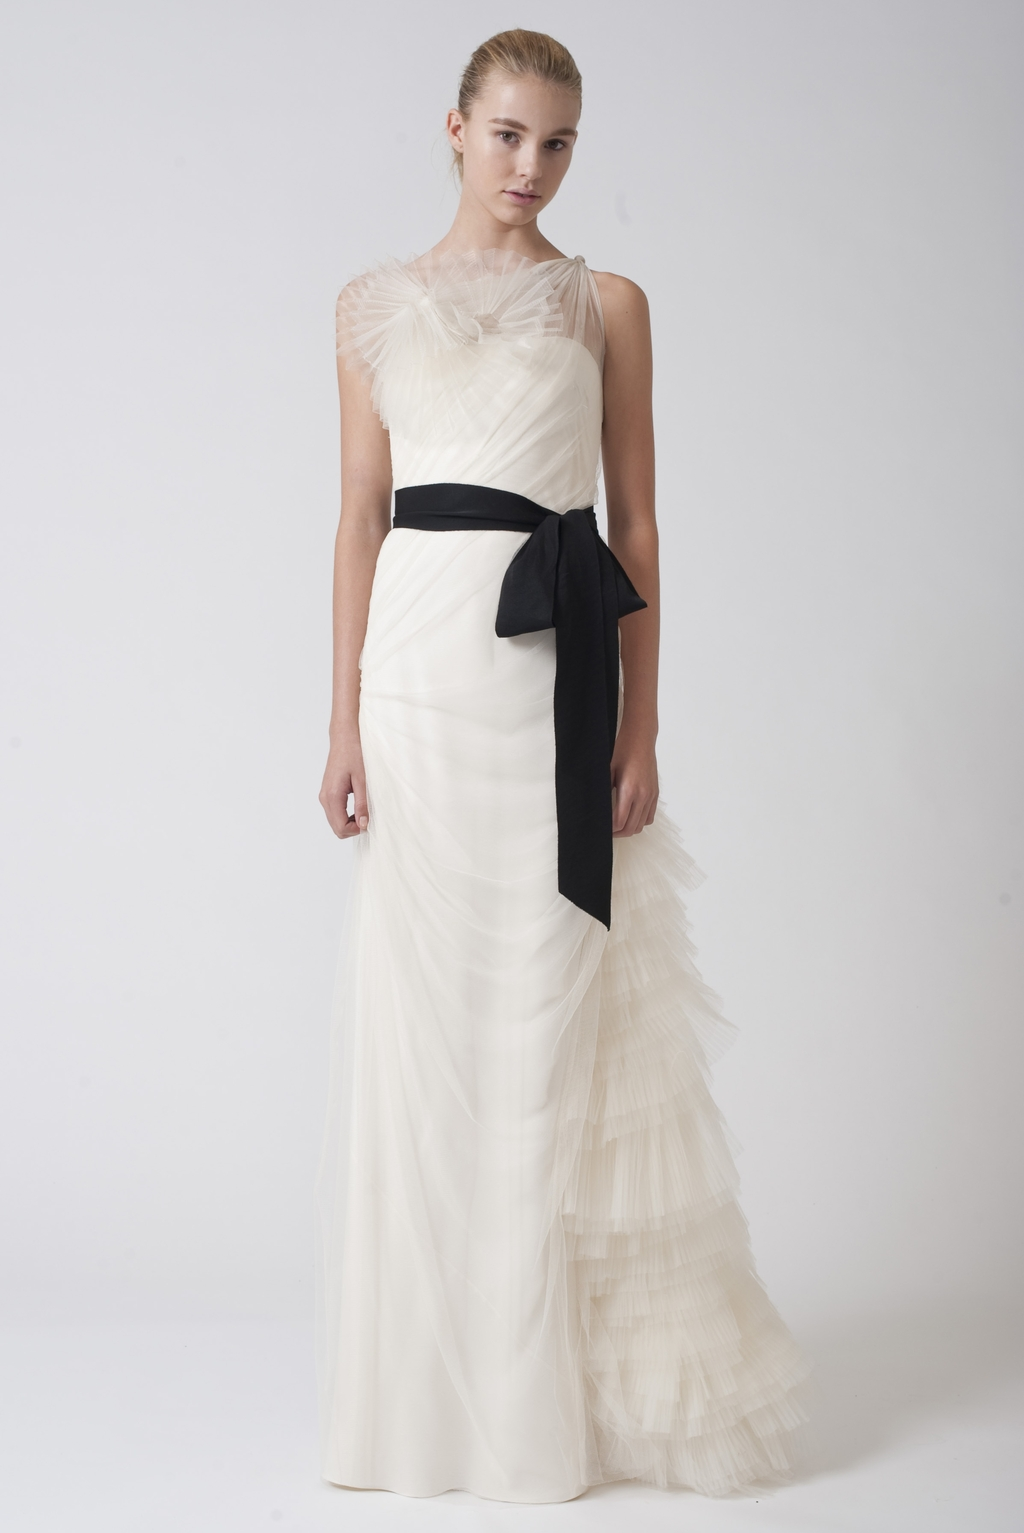 Vera-wang-wedding-dresses-fall-2010-6.full